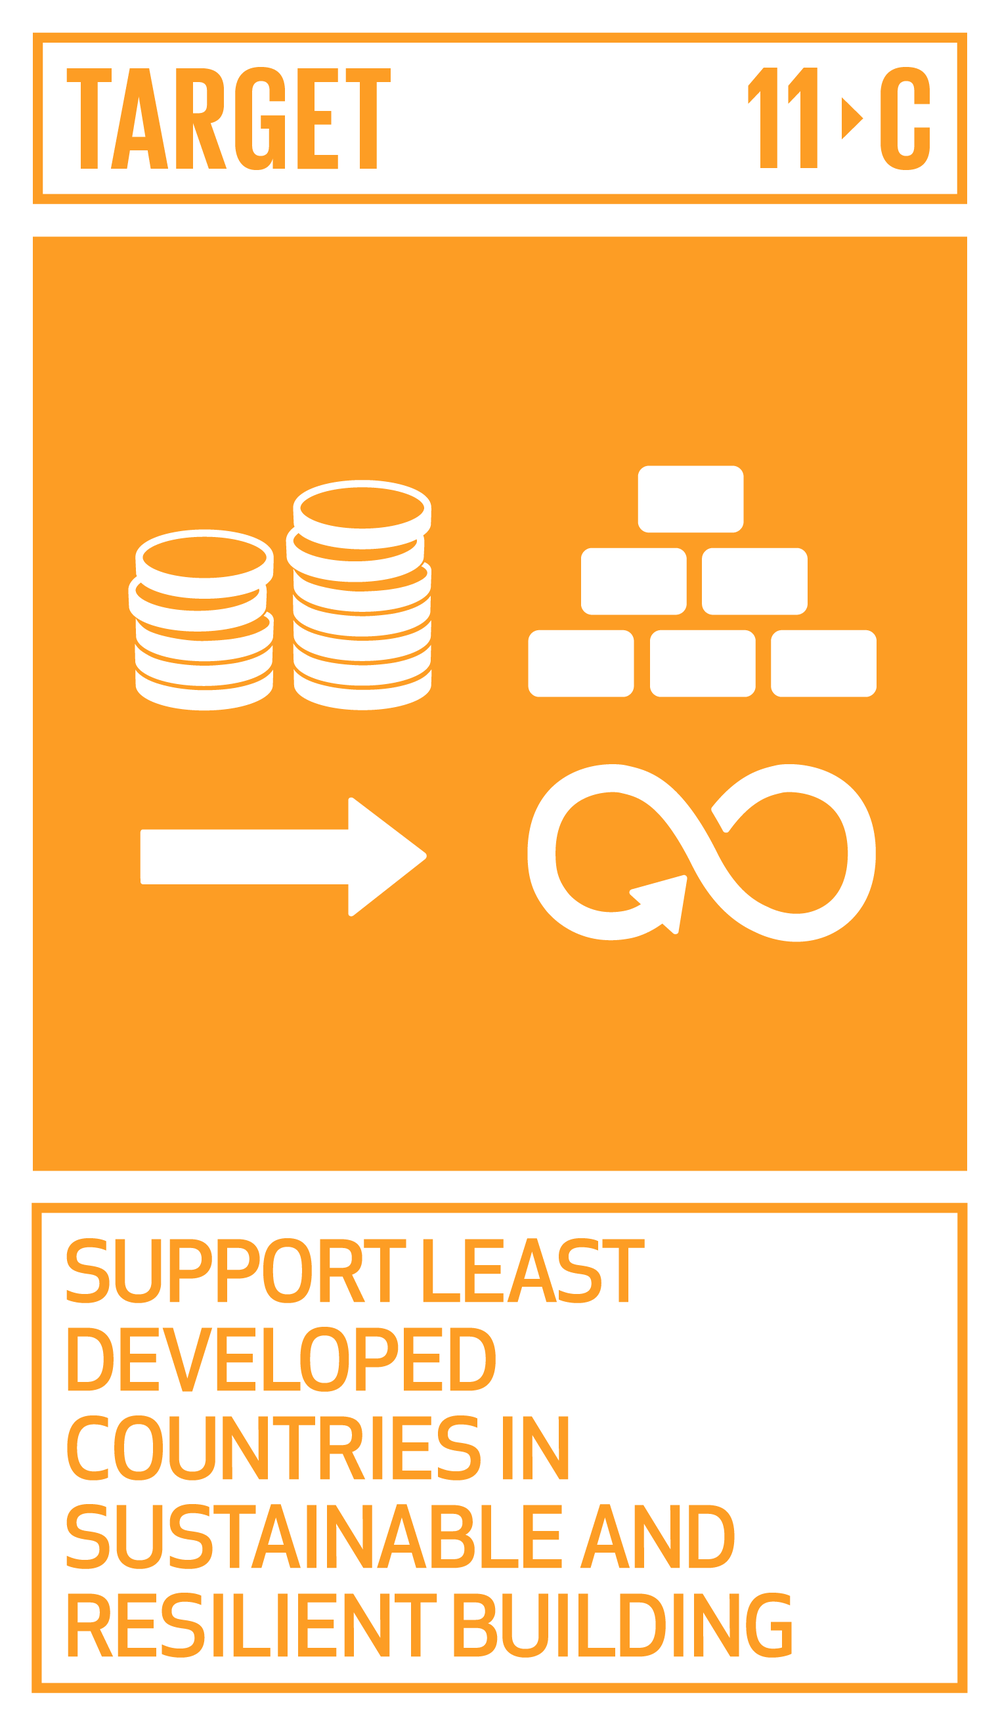 Support least developed countries, including through financial and technical assistance, in building sustainable and resilient buildings utilizing local materials.   INDICATOR    11.c.1  Proportion of financial support to the least developed countries that is allocated to the construction and retrofitting of sustainable, resilient and resource-efficient buildings utilizing local materials